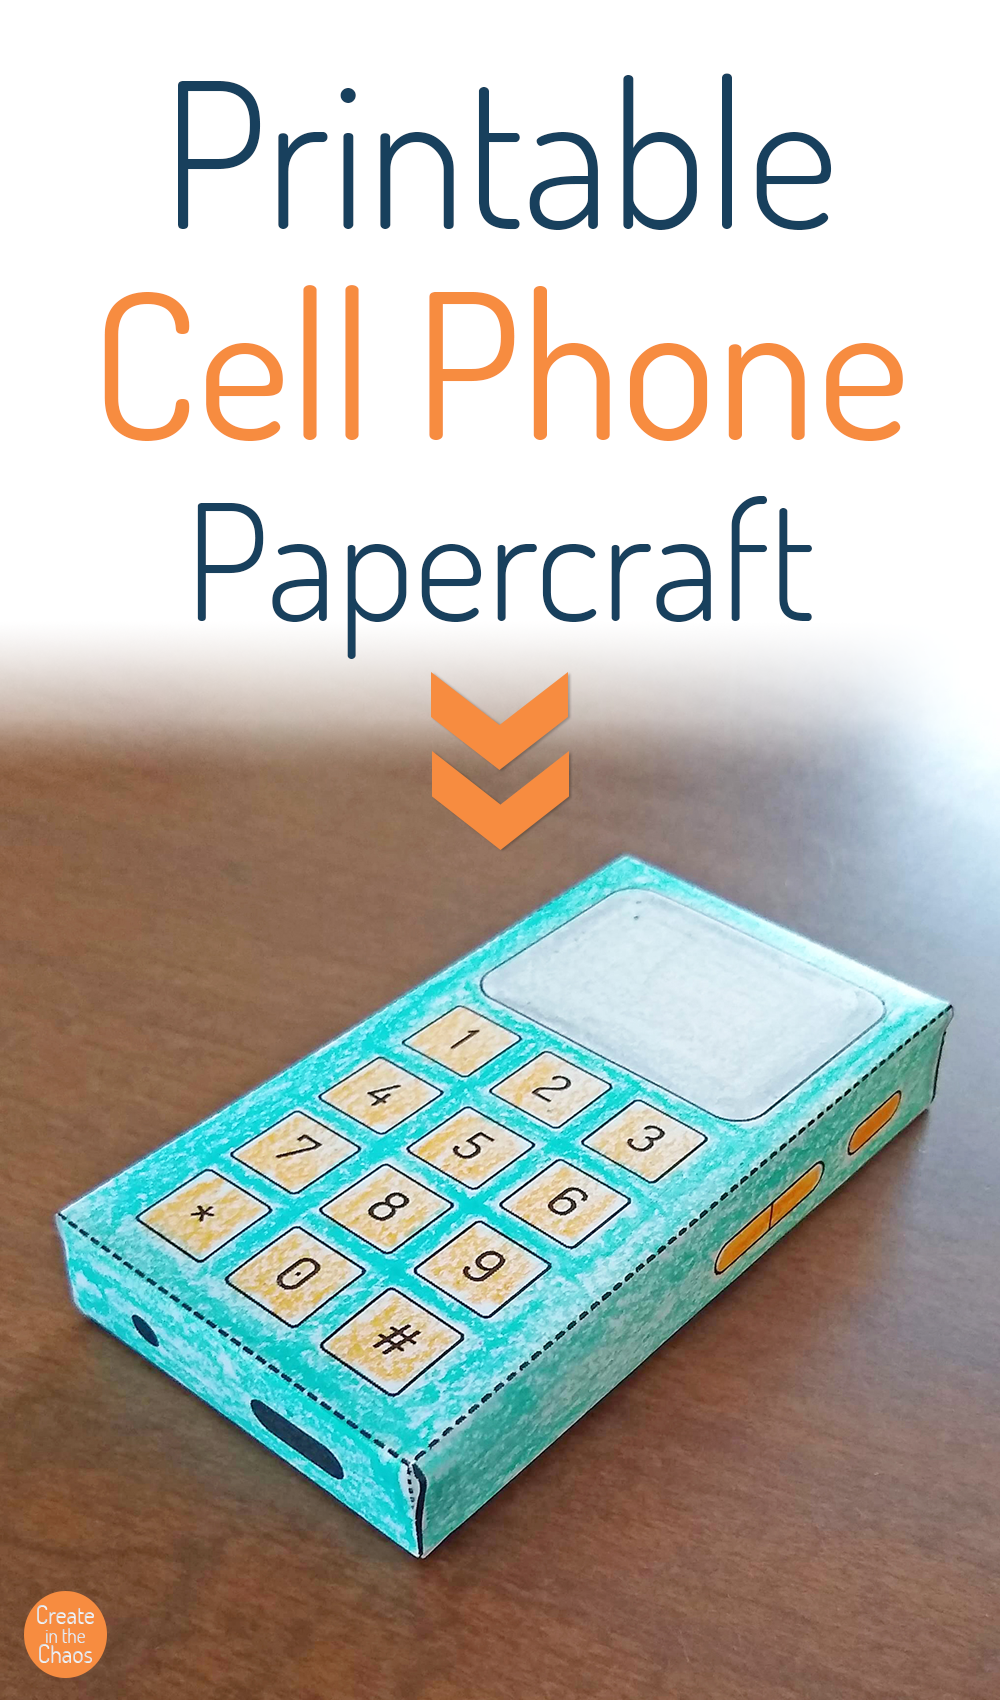 Printable Cell Phone Papercraft For Kids Create In The Chaos Phone Craft Kids Cell Phone Iphone Craft